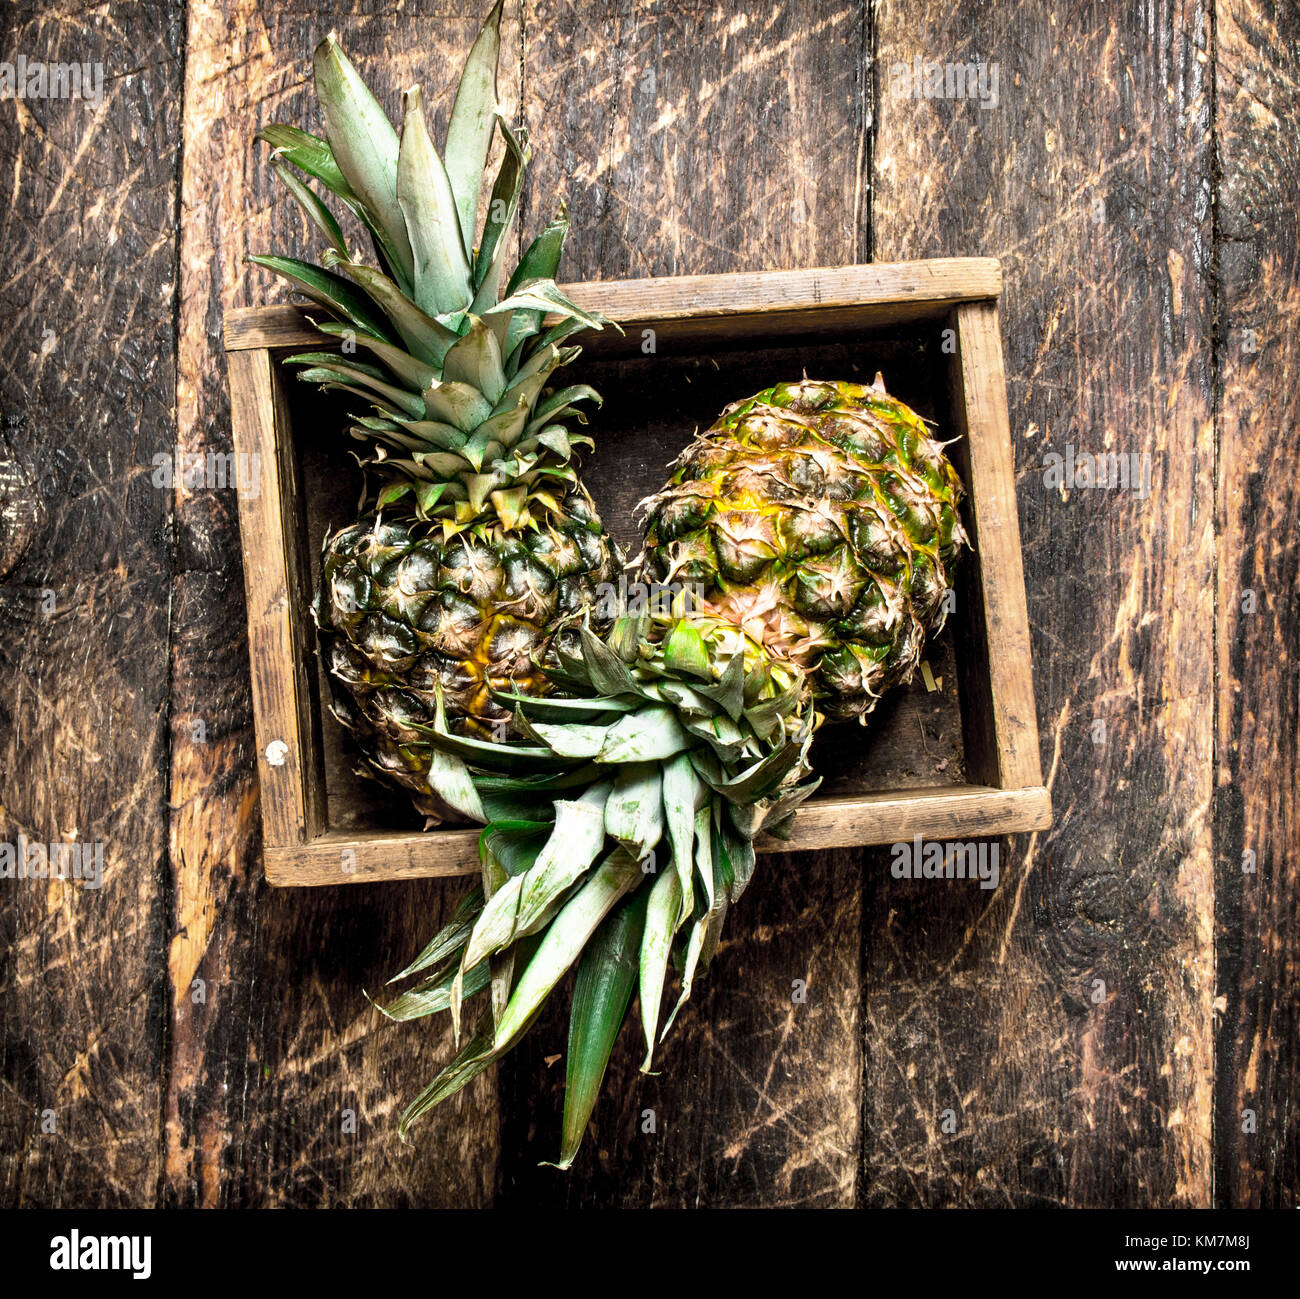 Fresh pineapple in an old box. On wooden background. - Stock Image